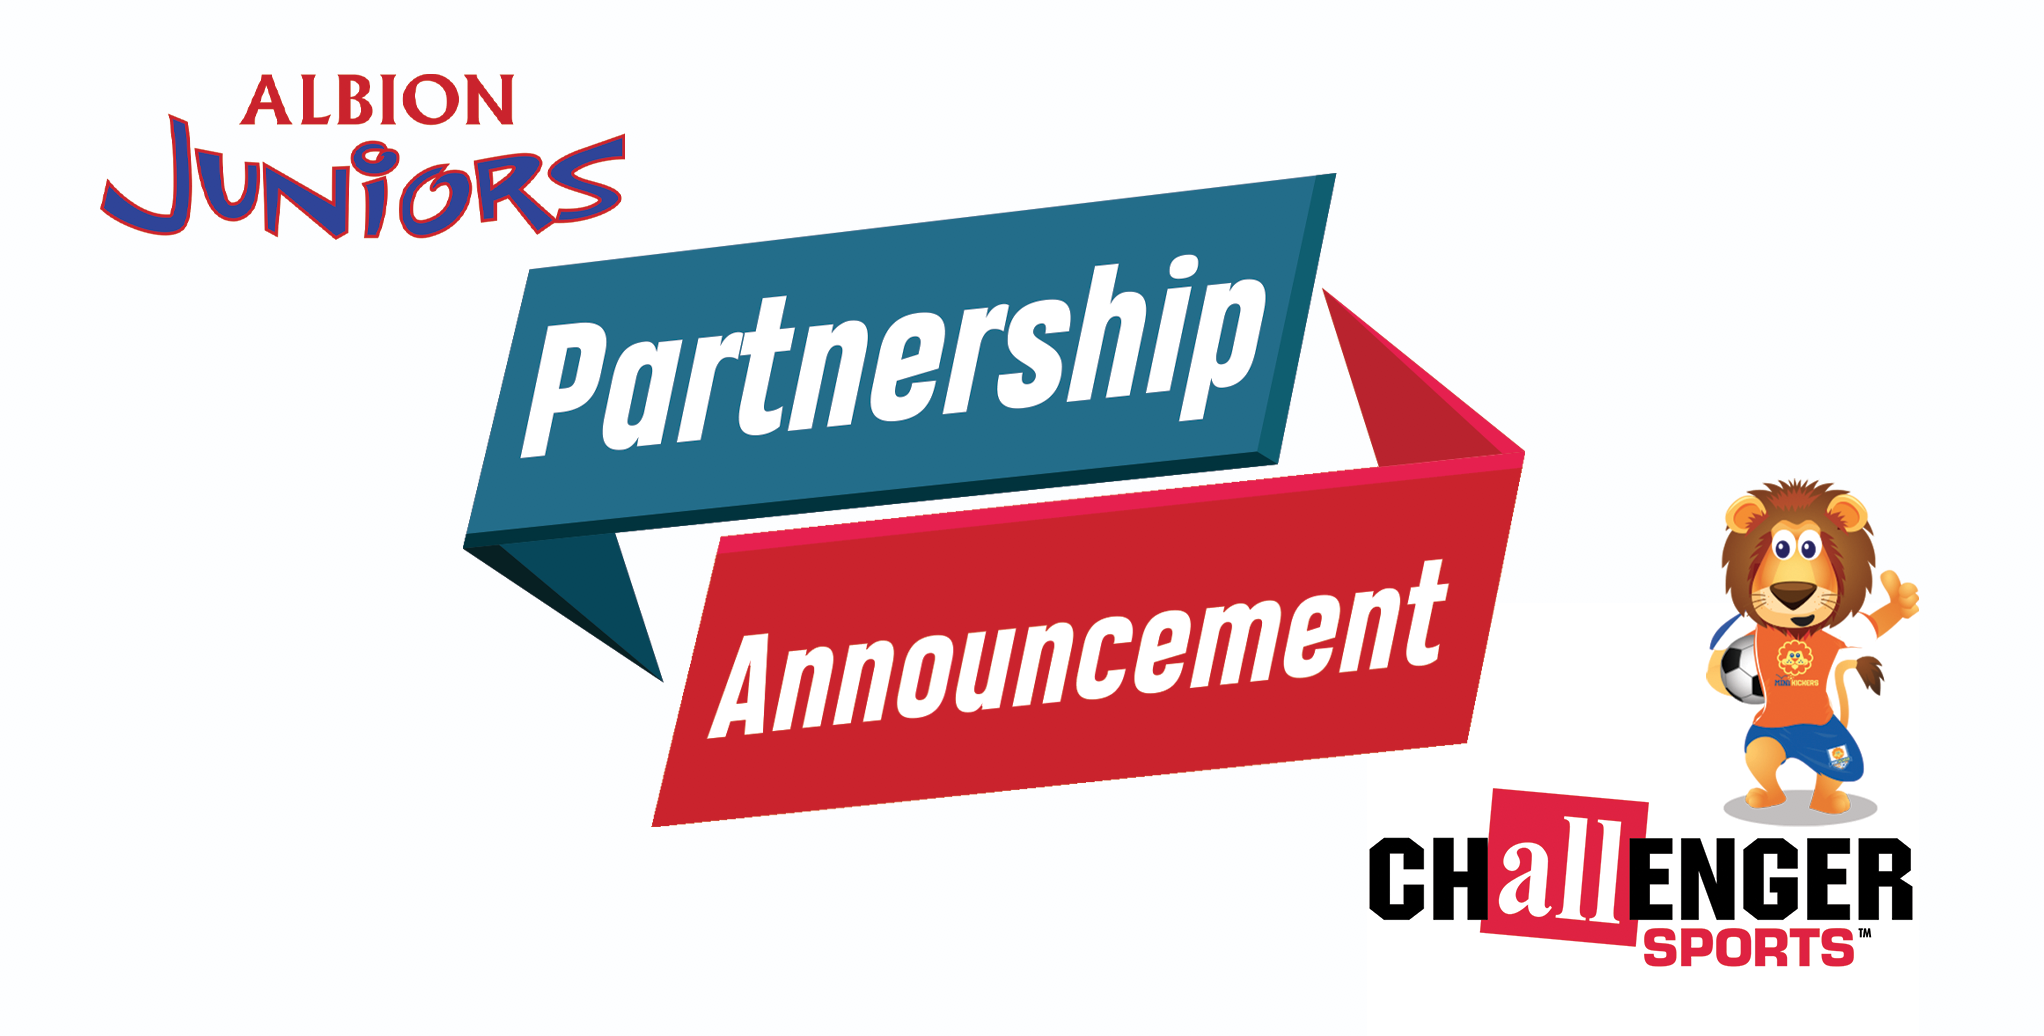 Albion Juniors is excited to announce our partnership with Challenger Sports' TinyTykes Soccer program!